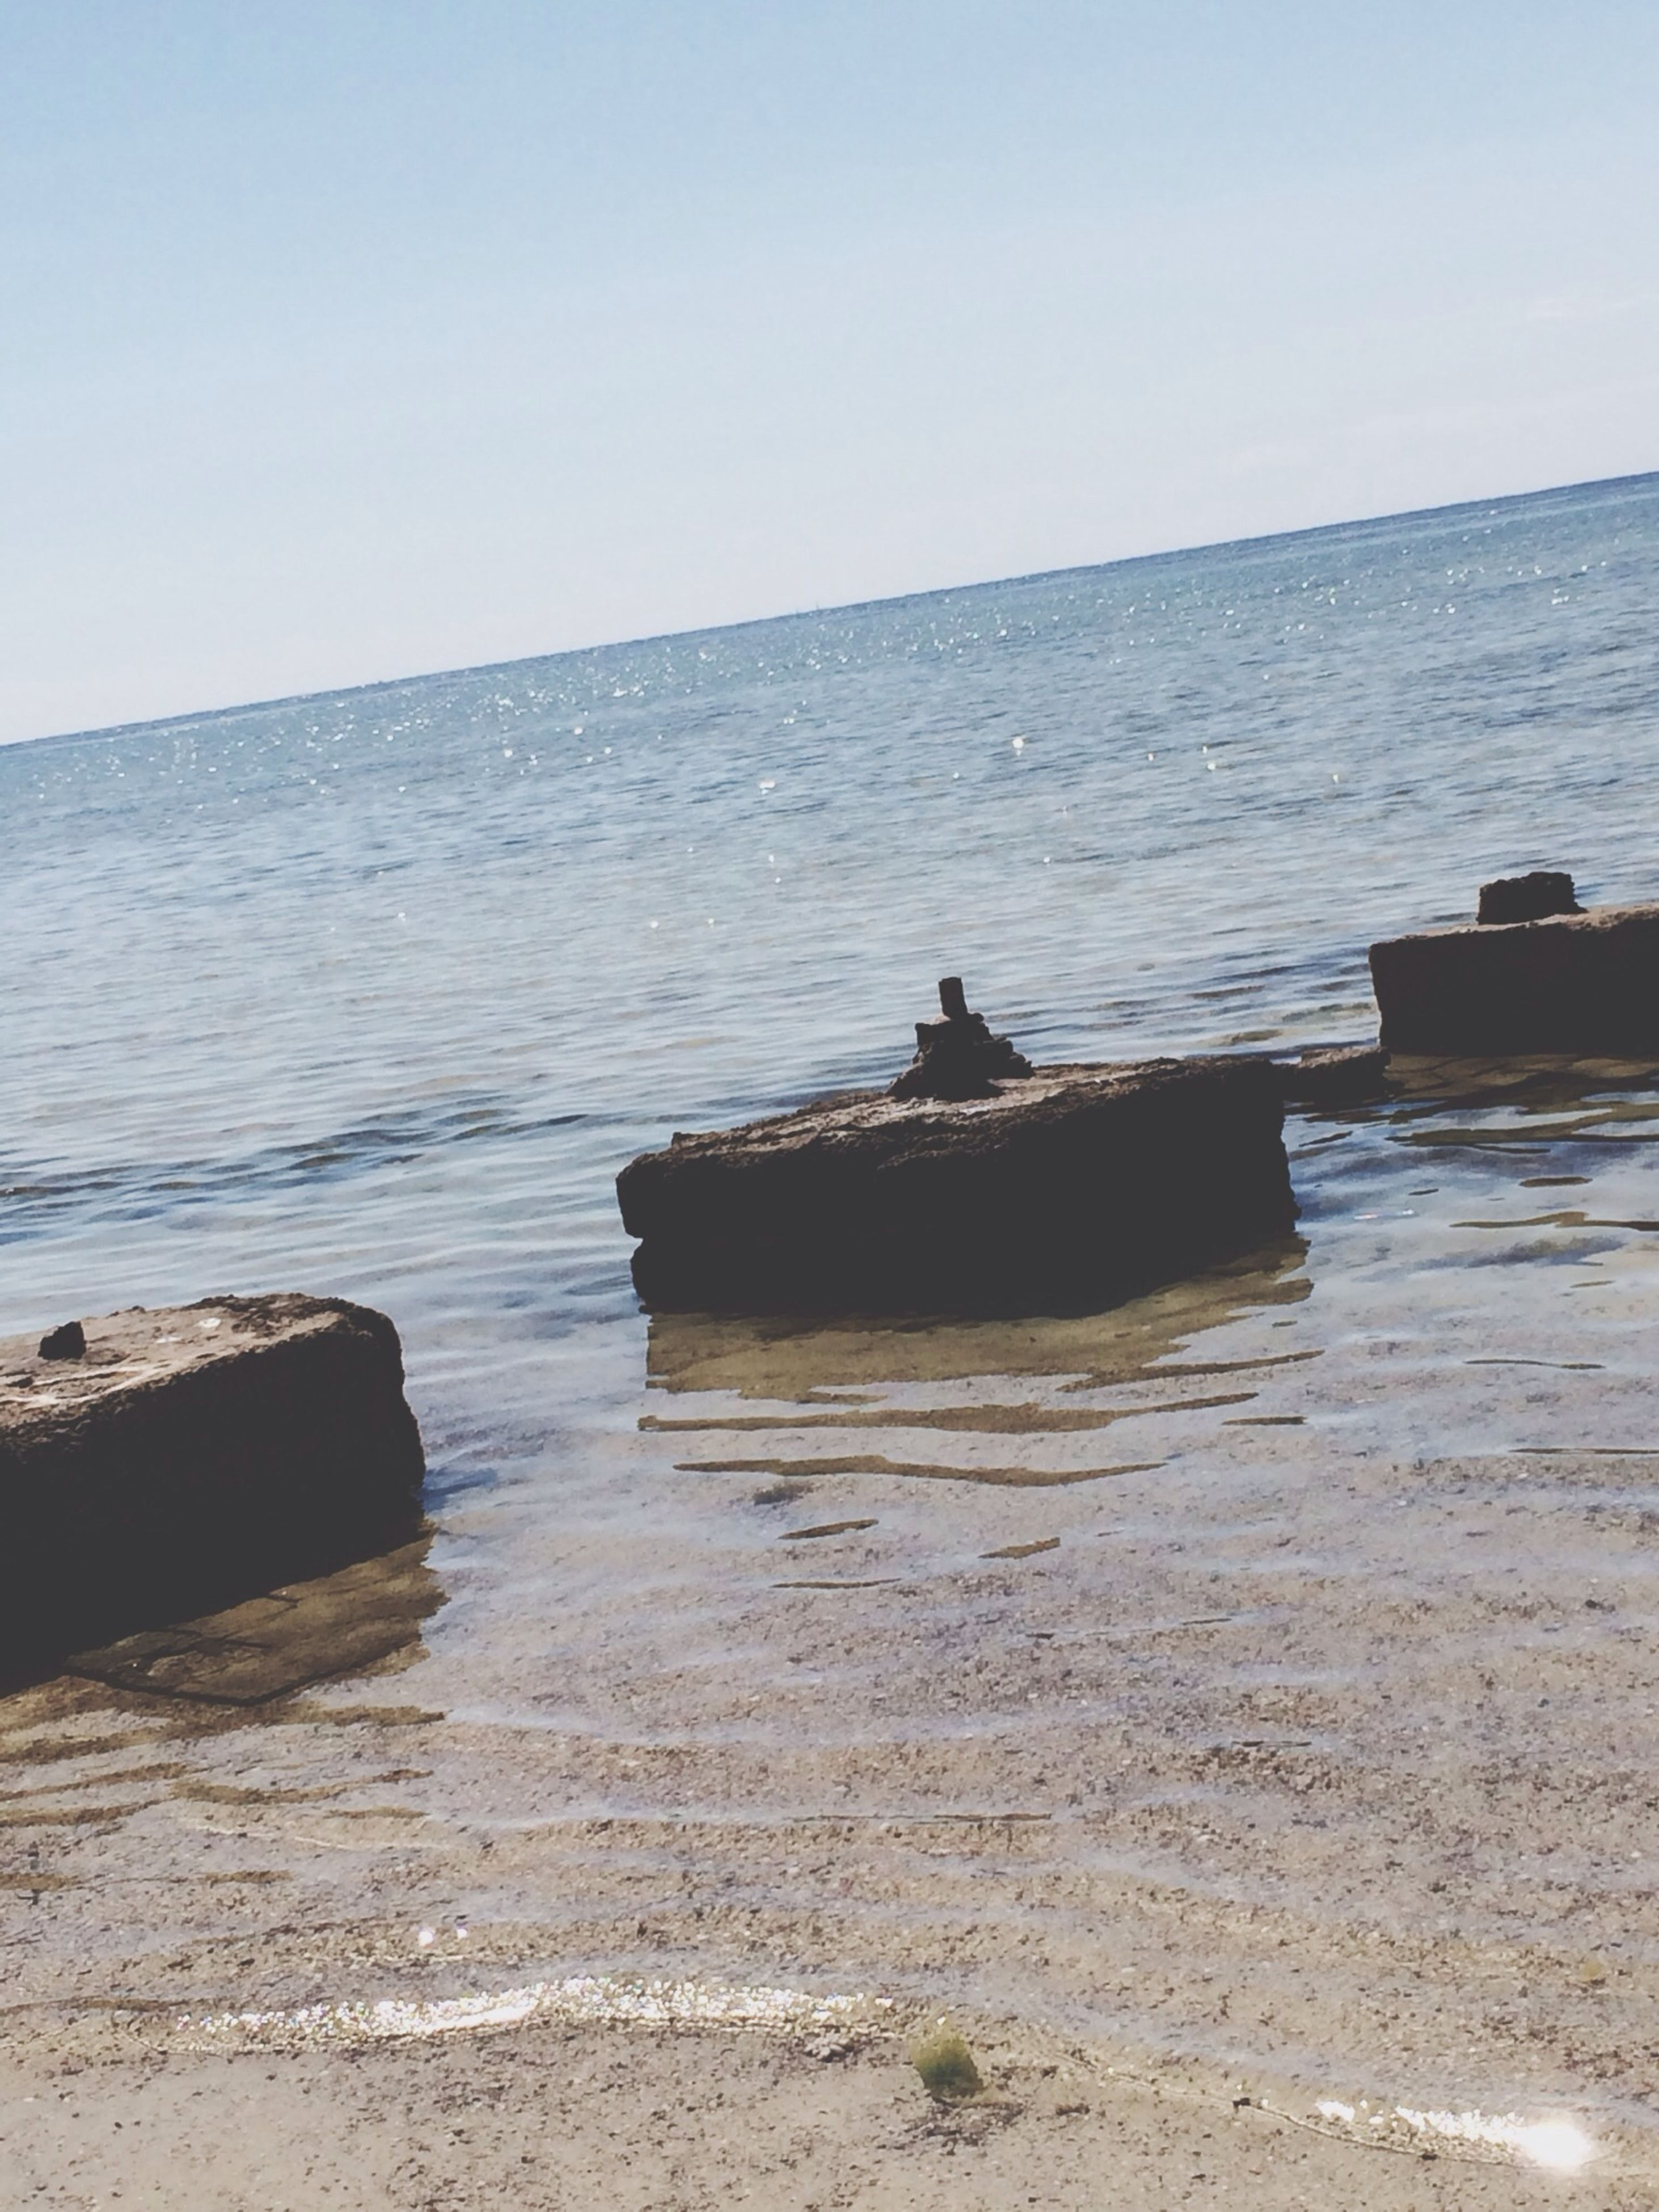 water, sea, clear sky, tranquility, tranquil scene, animal themes, one animal, horizon over water, copy space, nature, scenics, beach, beauty in nature, sky, shore, rock - object, idyllic, outdoors, nautical vessel, day